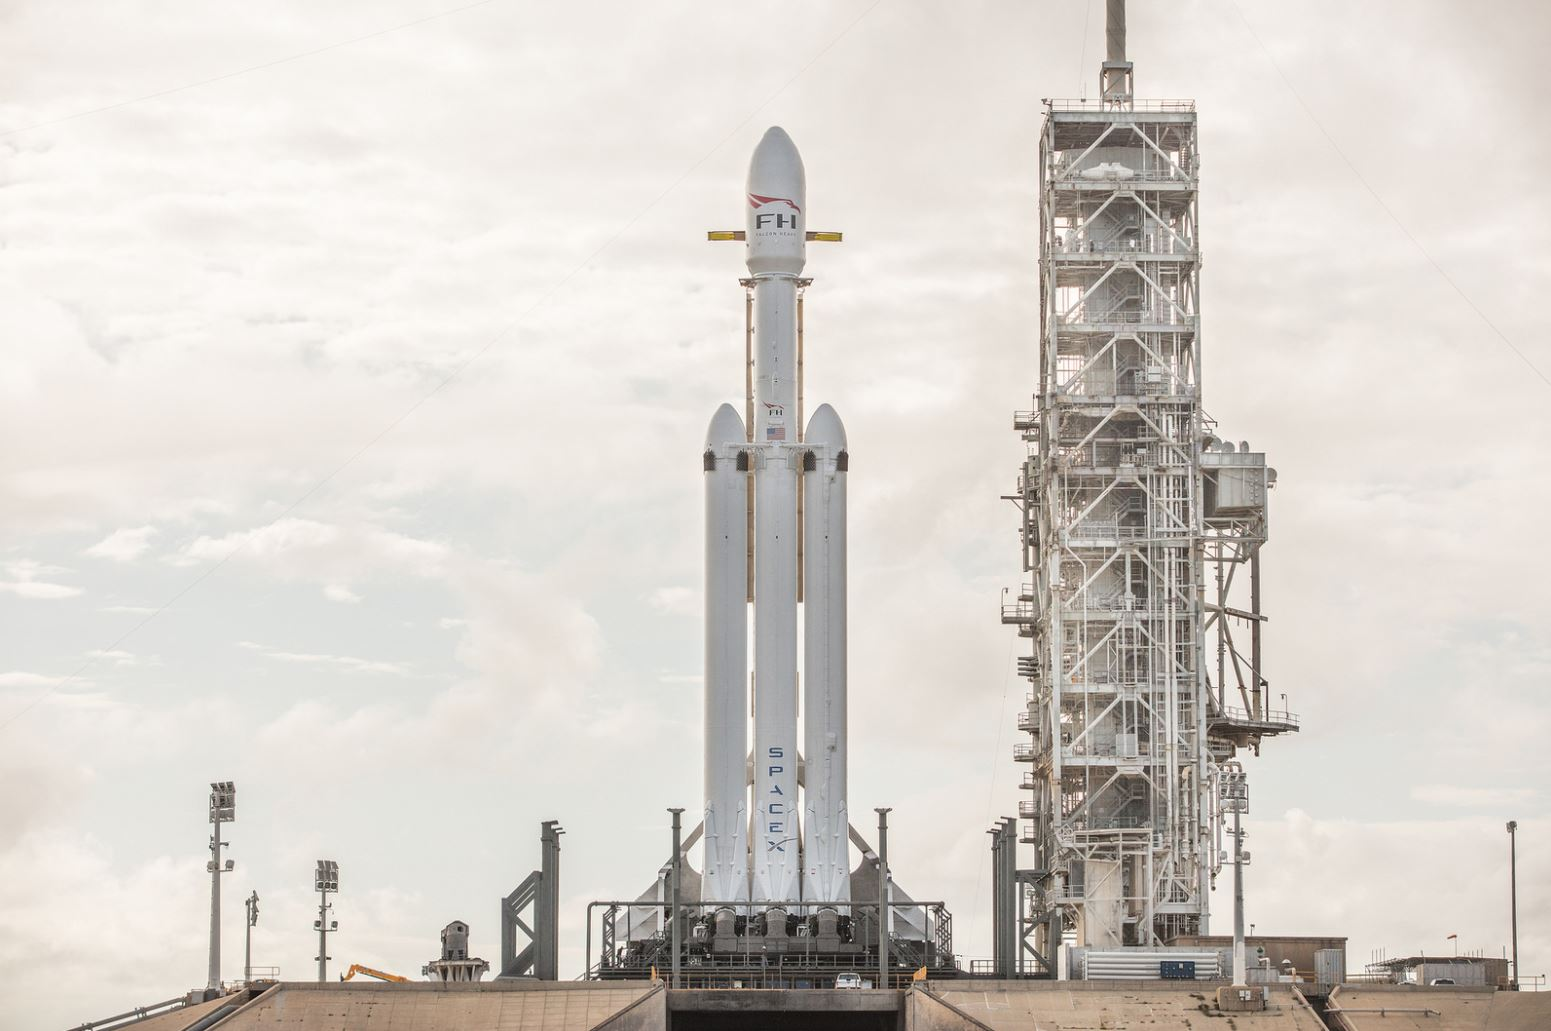 A stunning view of the Falcon Heavy at it's launchpad -  Image Credit: SpaceX via flickr